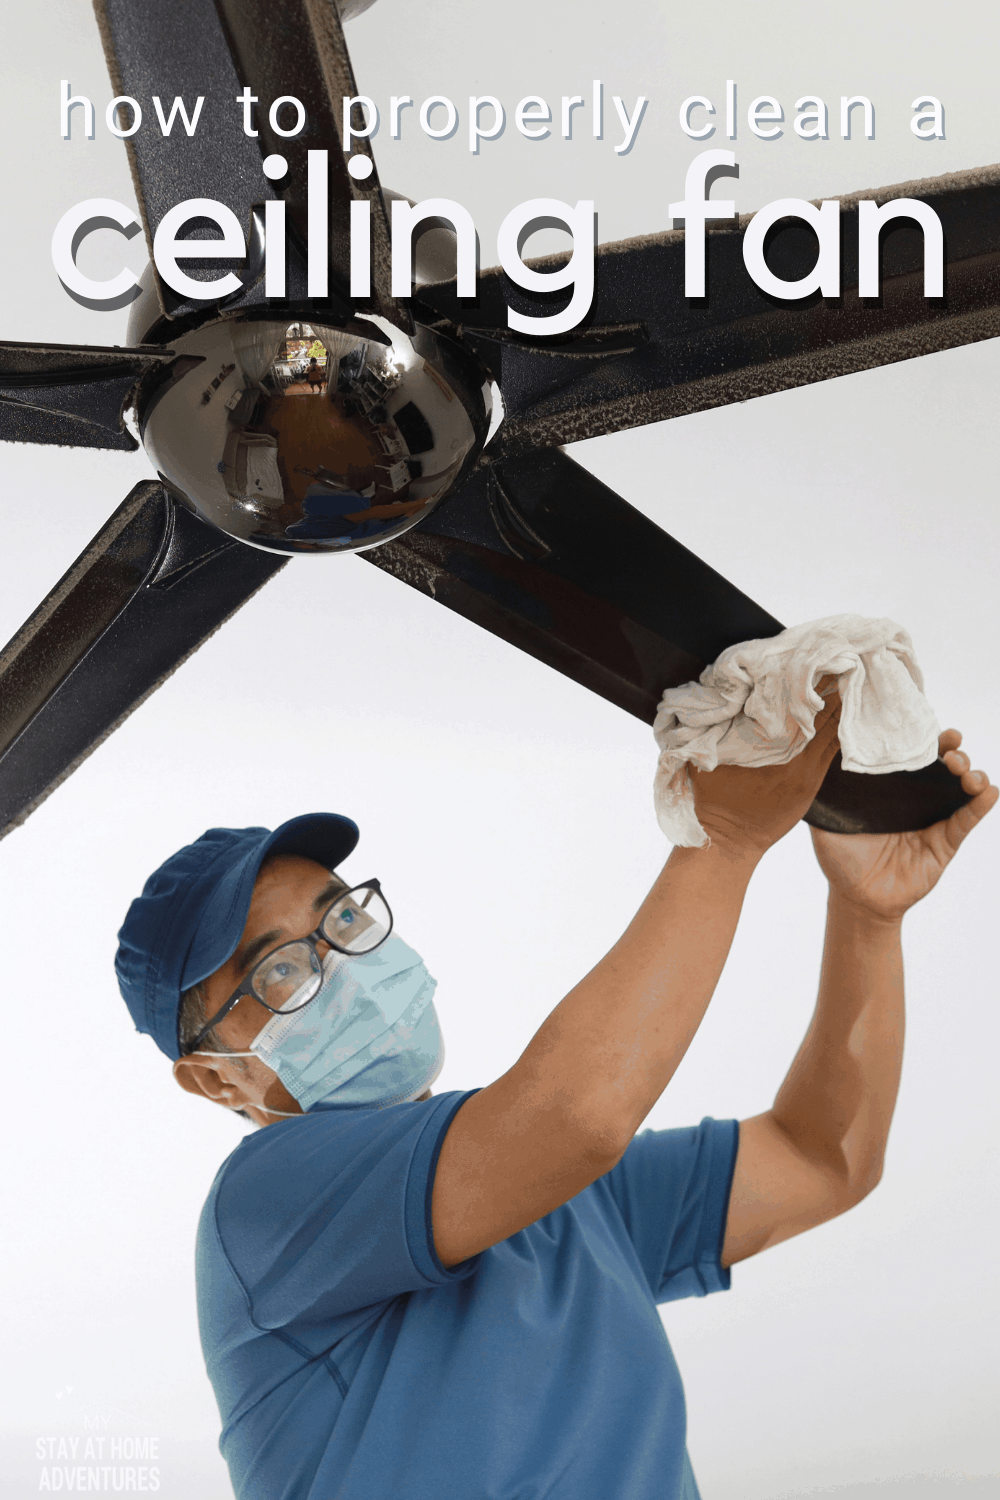 If your ceiling fan is looking a little dusty or wants to get it looking like new again, there are several ways to clean it. Here are some quick and easy tips for cleaning ceiling fans! via @mystayathome